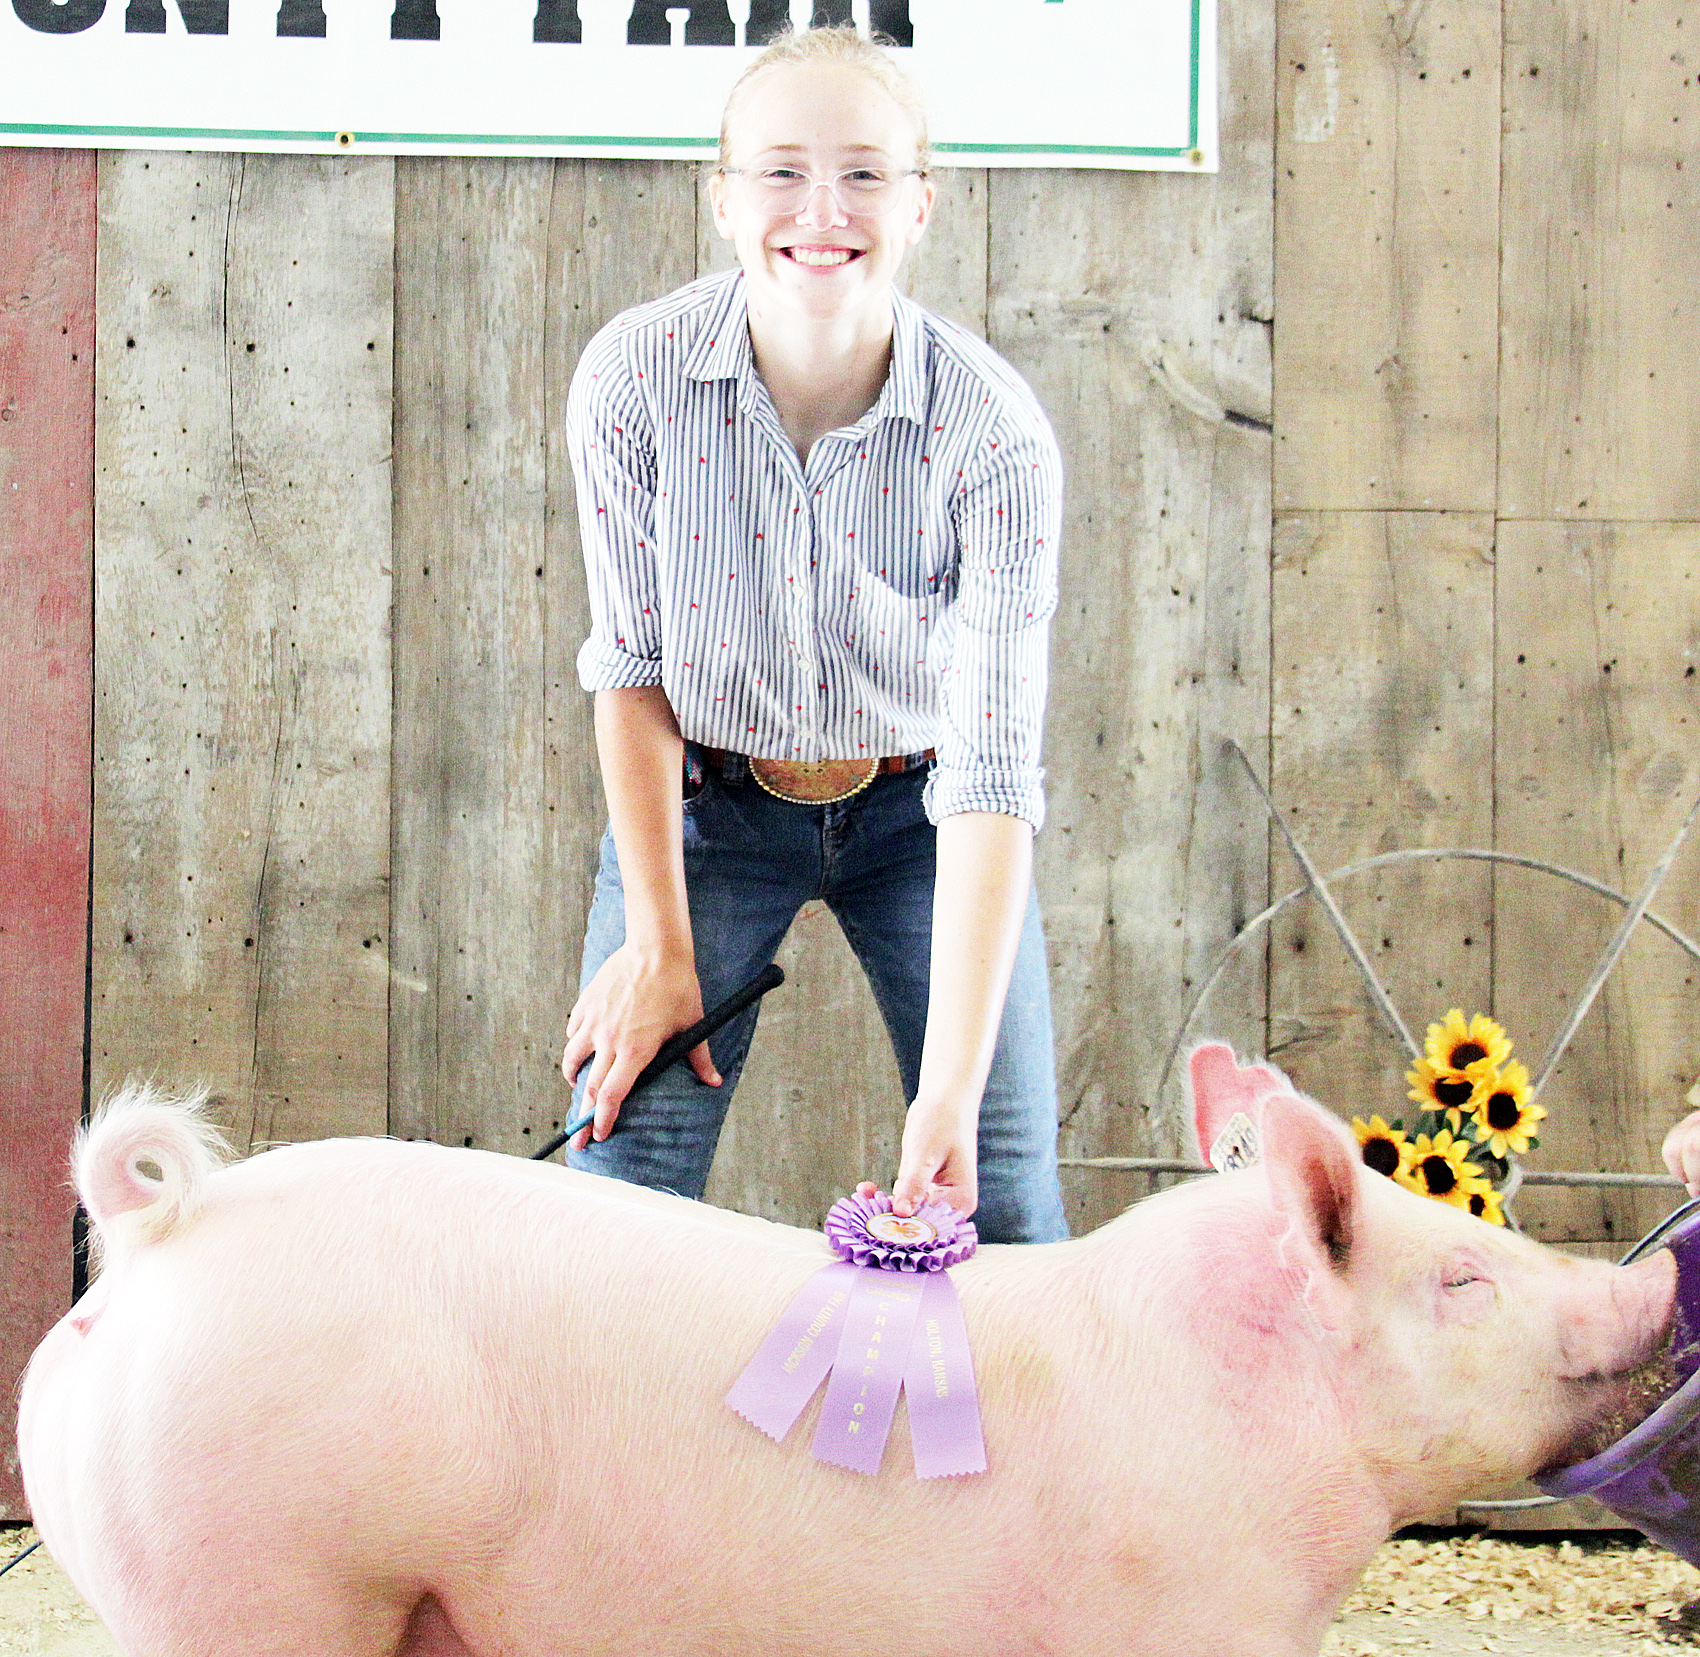 Lora Larison of the Pleasant Valley Rustlers 4-H Club showed the Reserve Champion Yorkshire market hog at the 2020 Jackson County Fair.